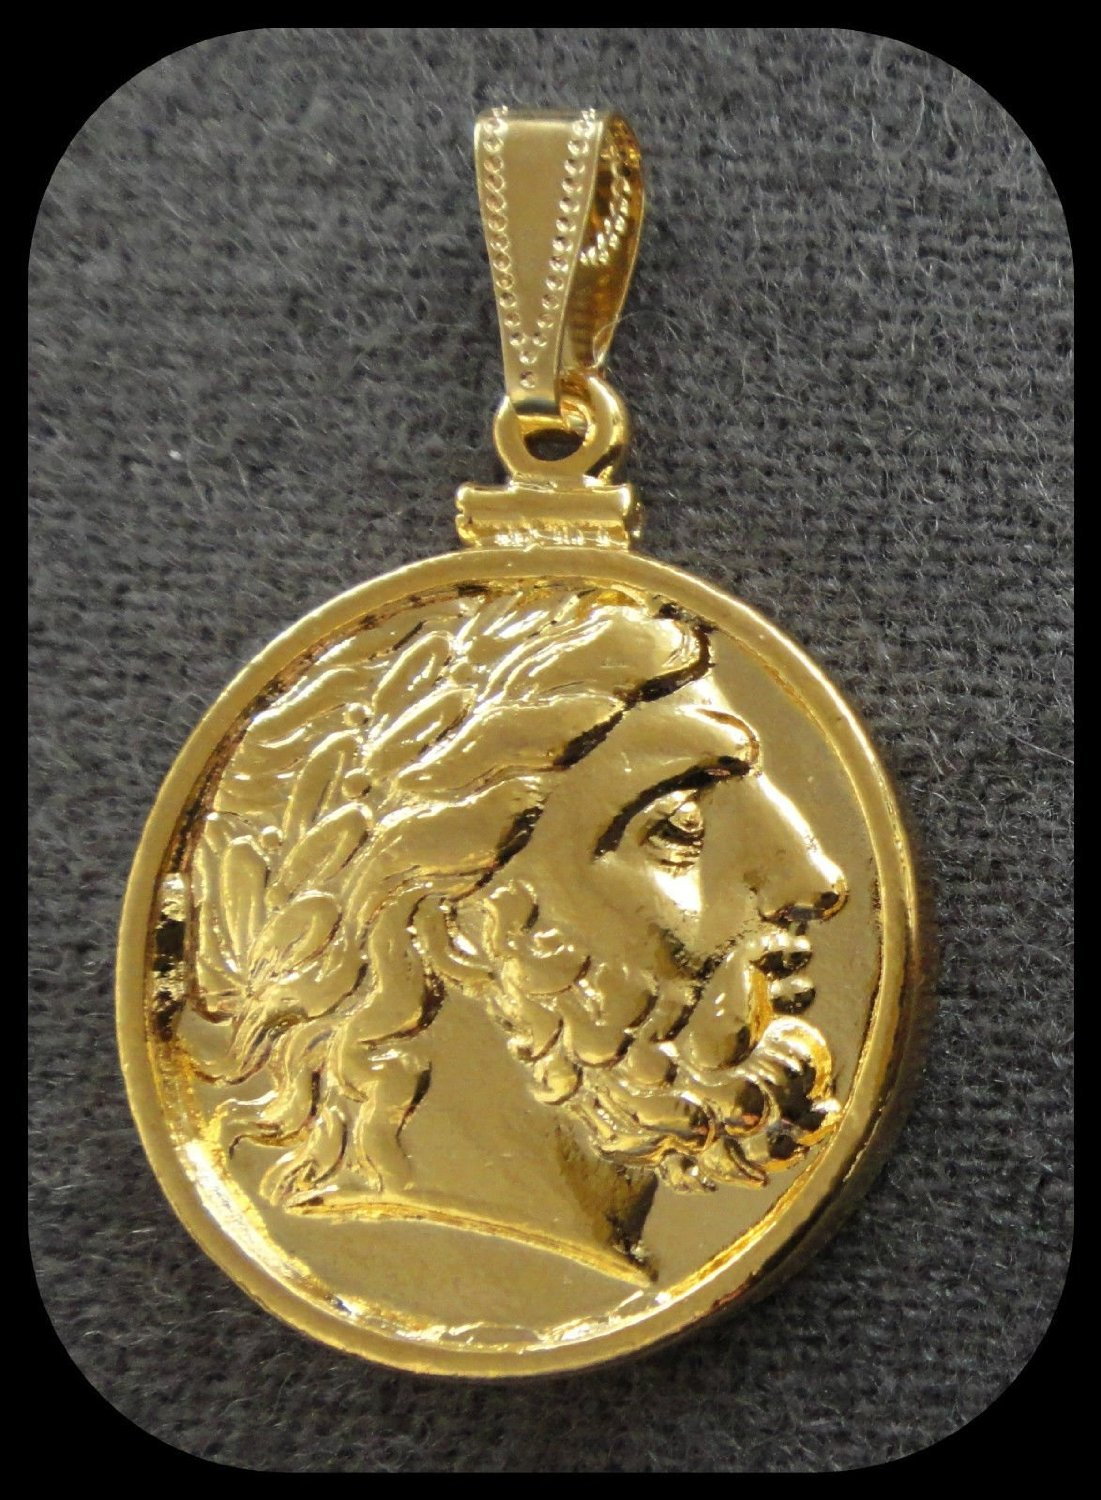 coin pendant zeus king of gods  k gold plated amazoncouk  - coin pendant zeus king of gods  k gold plated amazoncouk kitchen home